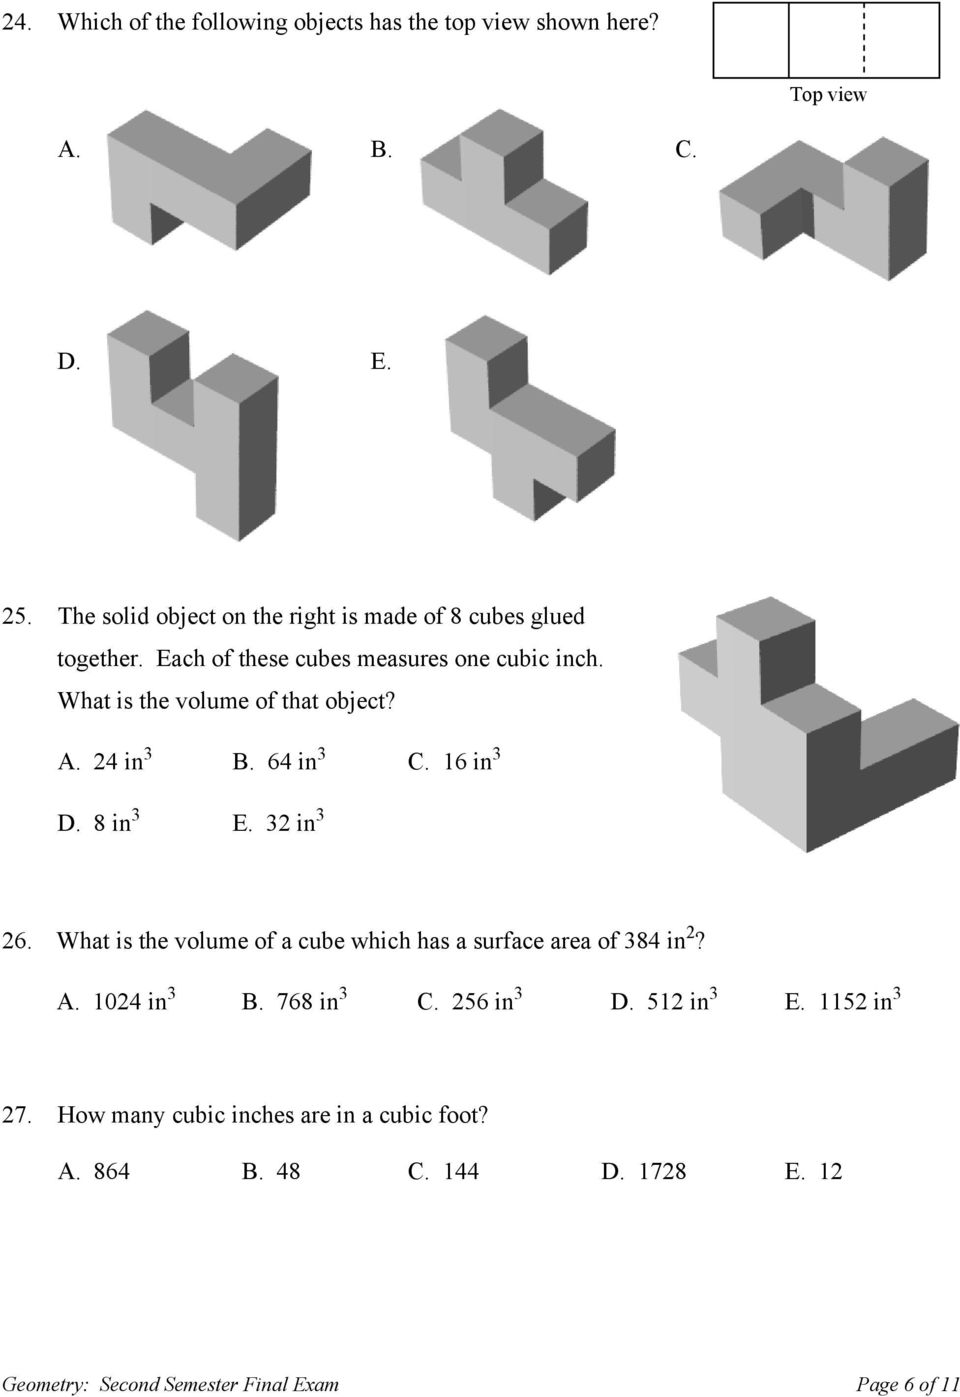 Advanced Geometry Semester Exam Review Renault Megane Wiring Diagrams Dvd 20022008 Ebay Image Of Page 1 Array Sandia High School Second Final Mark The Rh Docplayer Net